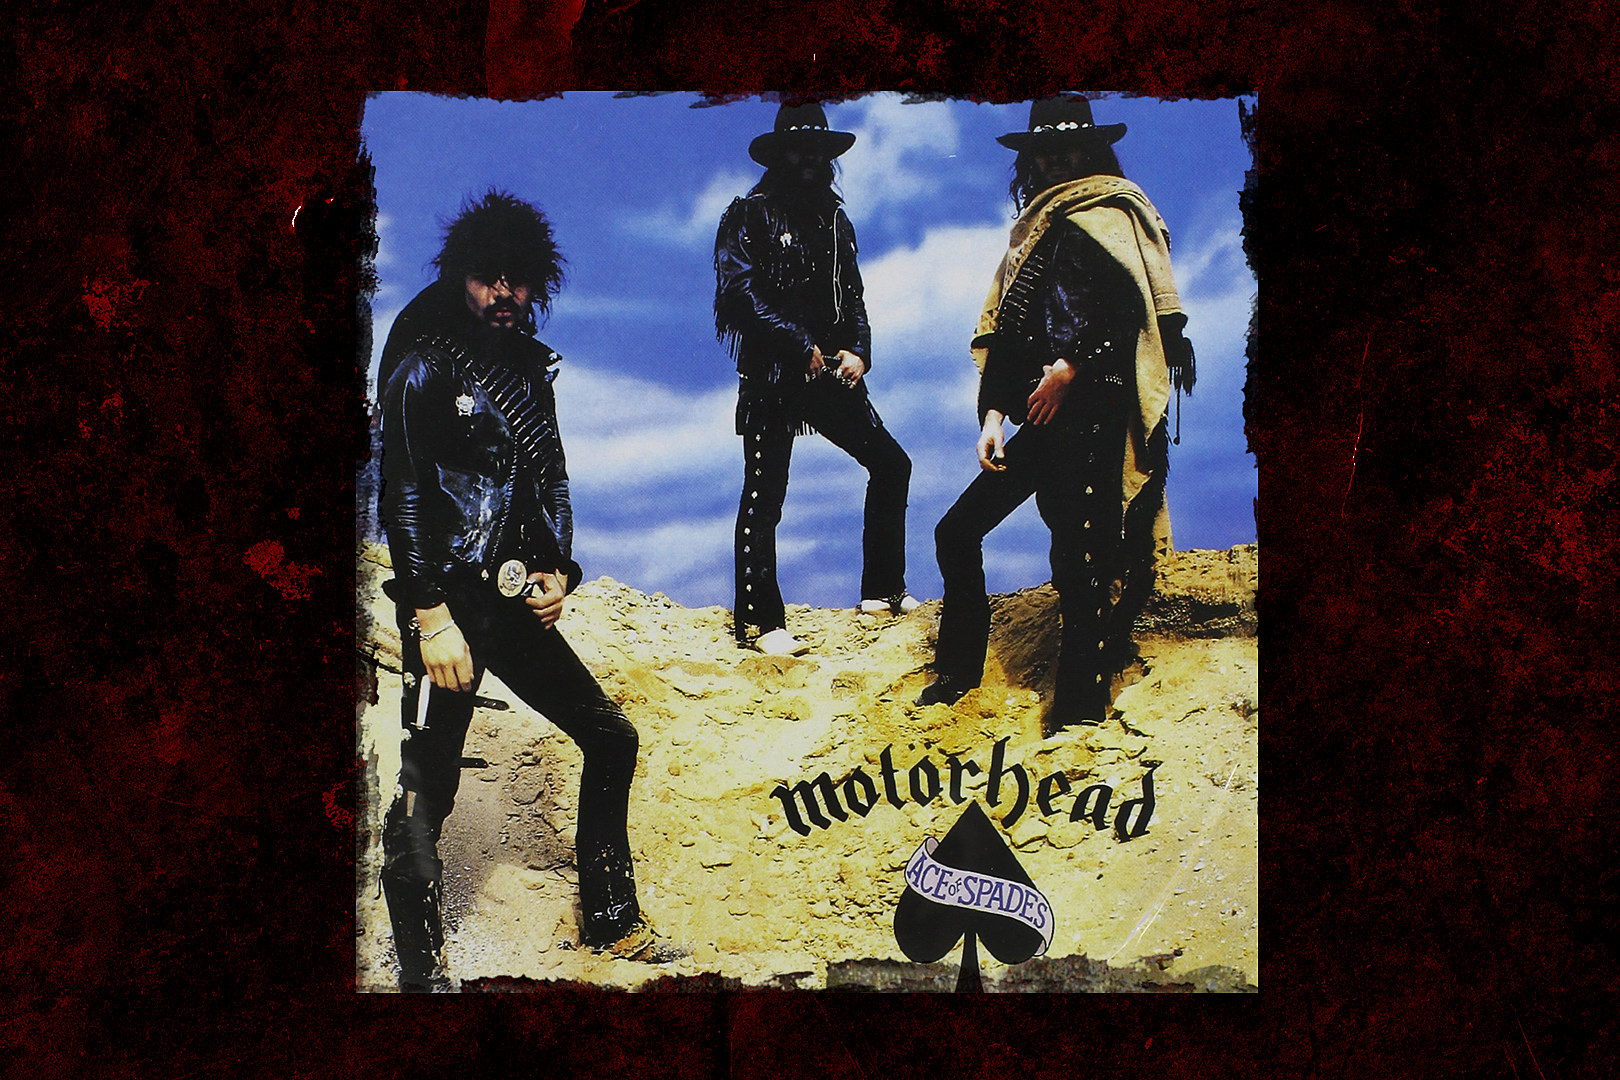 20 Facts You Probably Didn't Know About Motorhead